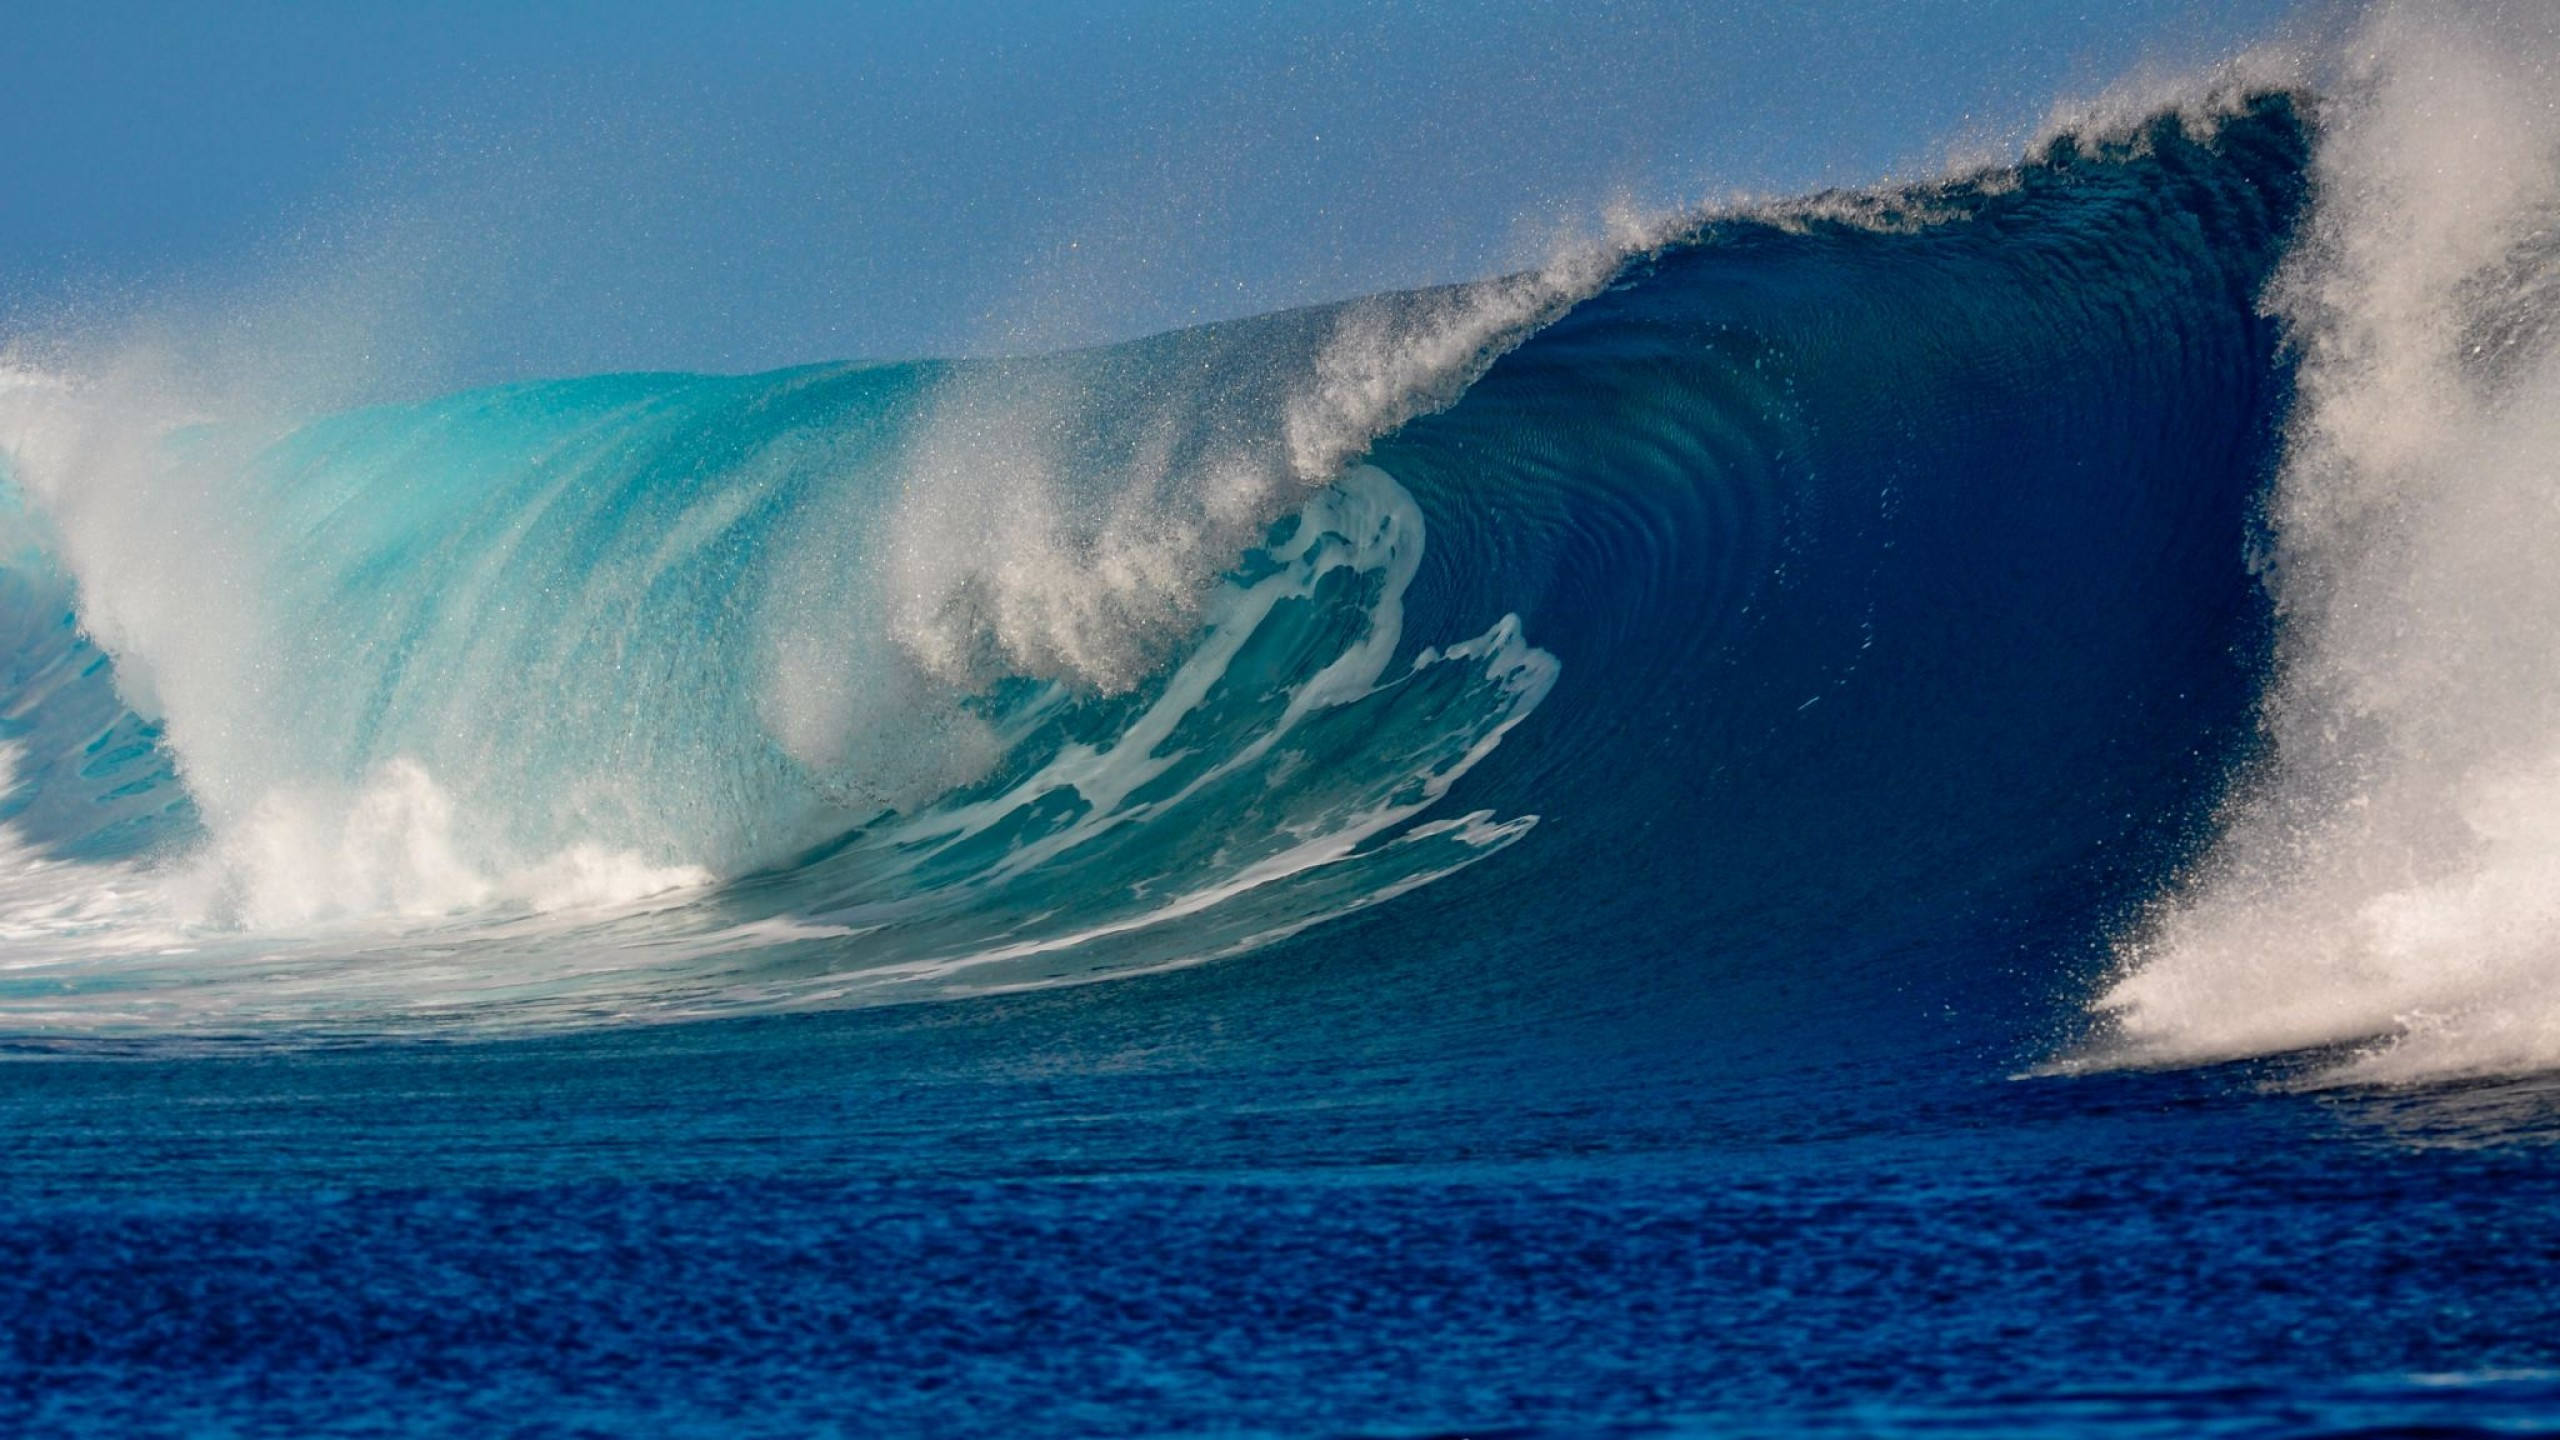 Beautiful Ocean Waves Live Wallpaper For Desktop And Mobiles Youtube